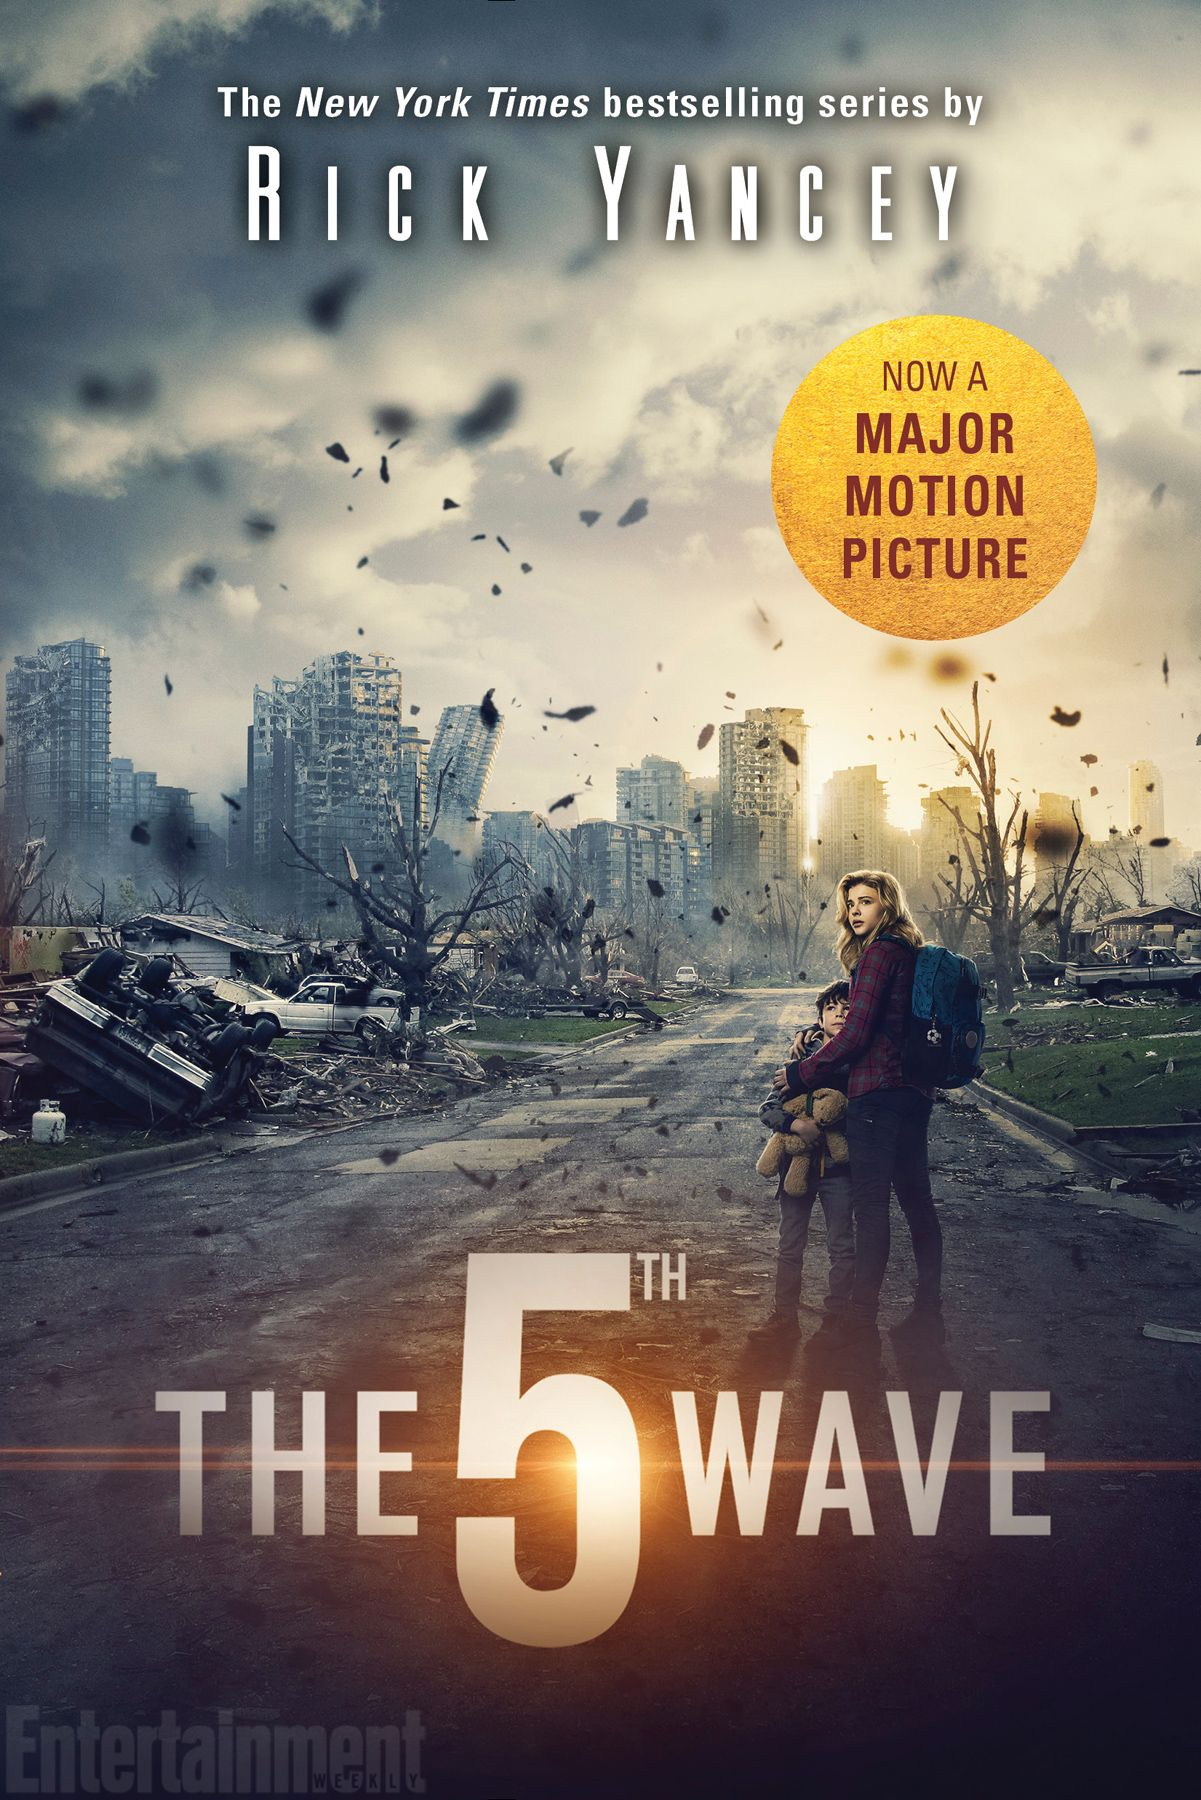 Rick Yancey's sci-fi adventure, The 5th Wave. is headed to the big screen  next year, and EW can exclusively reveal the cover of the movie tie-in  edition of ...